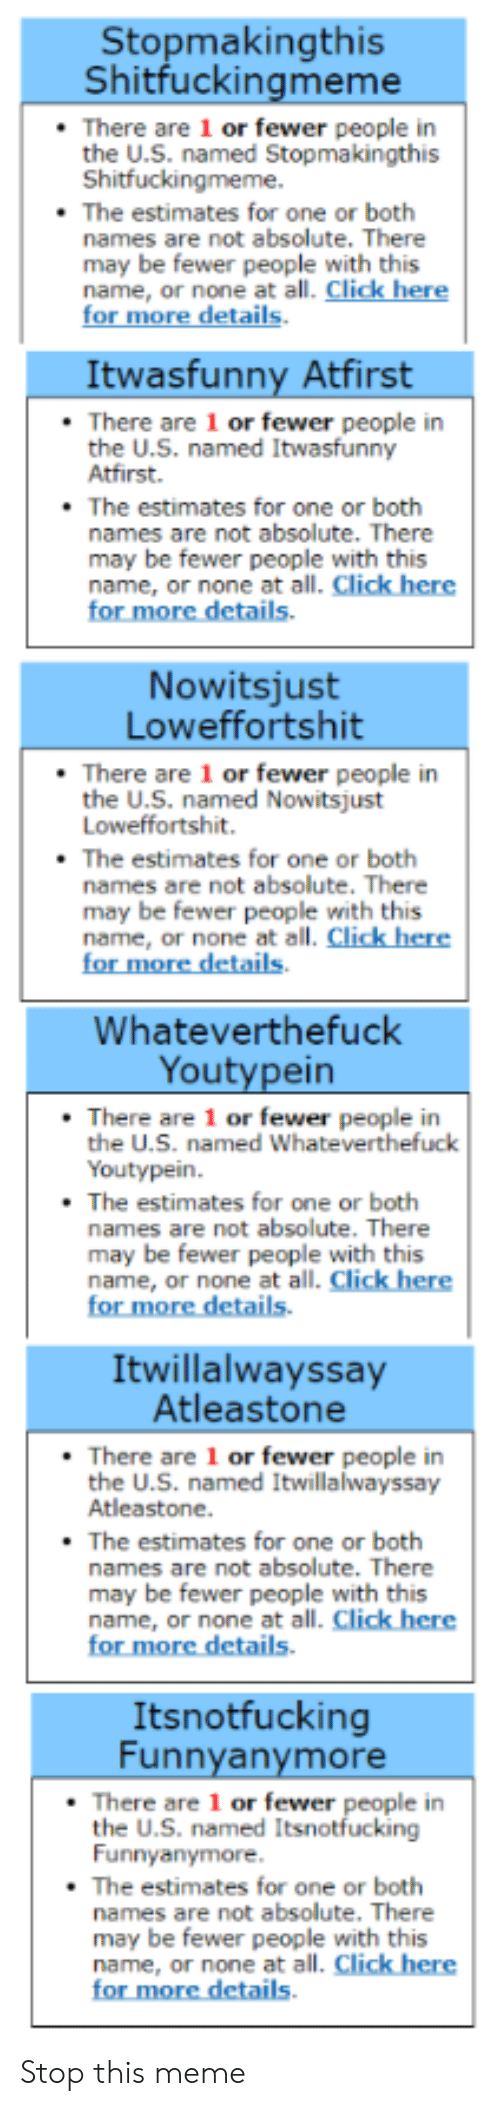 Click, Meme, and Dank Memes: Stopmakingthis  Shitfuckingmeme  There are 1 or fewer people in  the U.S. named Stopmakingthis  Shitfuckingmeme.  The estimates for one or both  names are not absolute. There  may be fewer people with this  name, or none at all. Click here  for more details  Itwasfunny Atfirst  There are 1 or fewer people in  the U.S. named Itwasfunny  Atfirst.  The estimates for one or both  names are not absolute. There  may be fewer people with this  name, or none at all. Click here  for more details.  Nowitsjust  Loweffortshit  There are 1 or fewer people in  the U.S. named Nowitsjust  Loweffortshit.  The estimates for one or both  names are not absolute. There  may be fewer people with this  name, or none at all. Click here  for more details  Whateverthefuck  Youtypein  There are 1 or fewer people in  the U.S. named Whateverthefuck  Youtypein.  The estimates for one or both  names are not absolute. There  may be fewer people with this  name, or none at all. Click here  for more details.  Itwillalwayssay  Atleastone  There are 1 or fewer people in  the U.S. named Itwillalwayssay  Atleastone.  The estimates for one or both  names are not absolute. There  may be fewer people with this  name, or none at all. Click here  for more details  Itsnotfucking  Funnyanymore  There are 1 or fewer people in  the U.S. named Itsnotfucking  Funnyanymore.  The estimates for one or both  names are not absolute. There  may be fewer people with this  name, or none at all. Click here  for more details Stop this meme